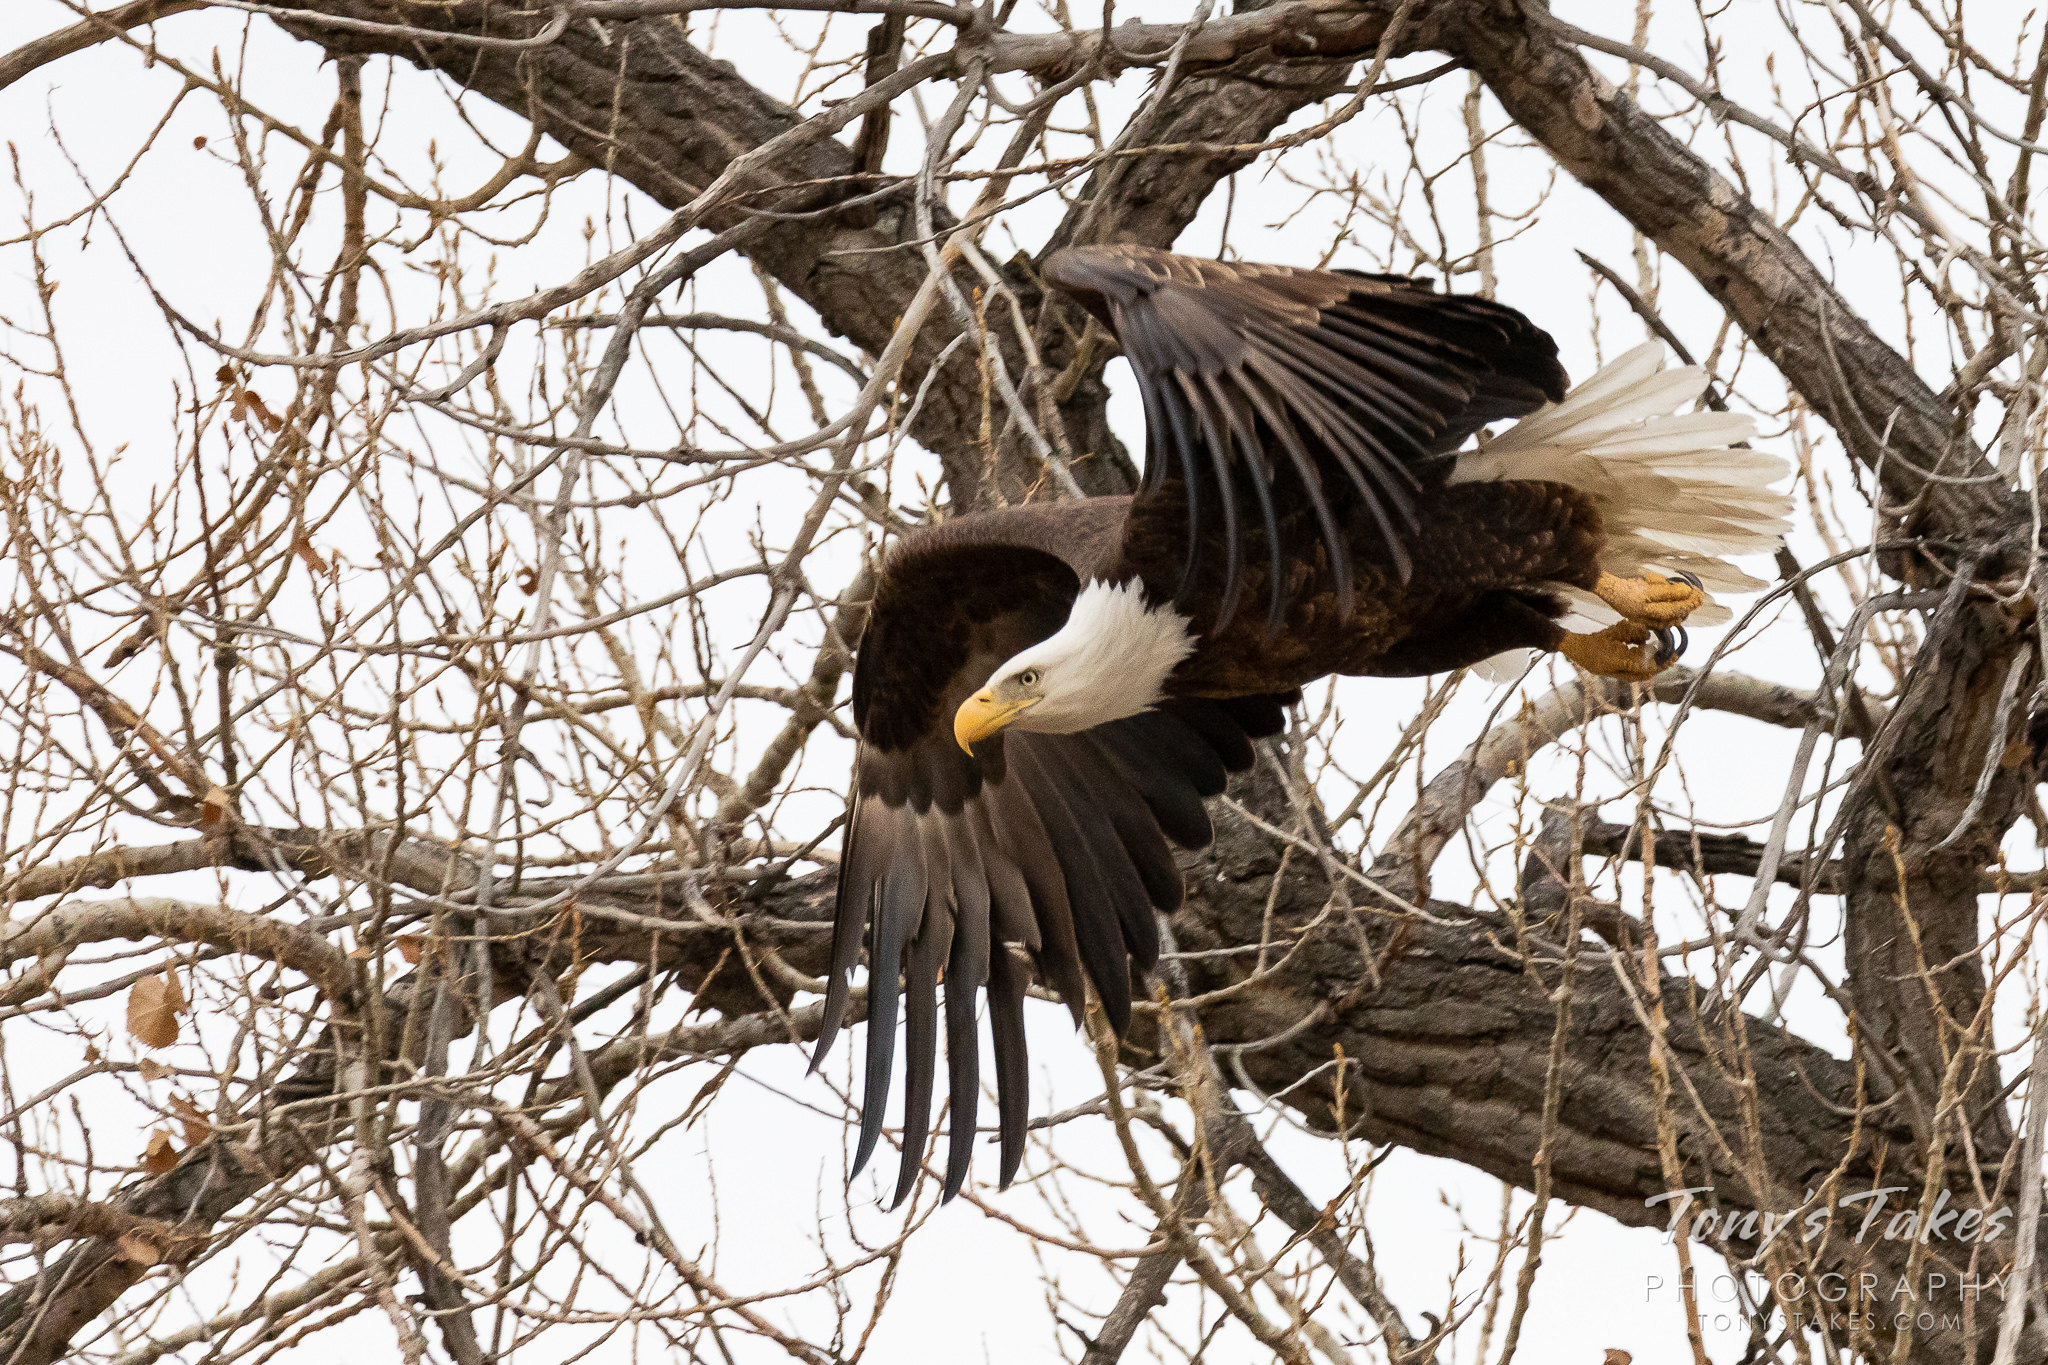 Female bald eagle takes to the skies for Freedom Friday